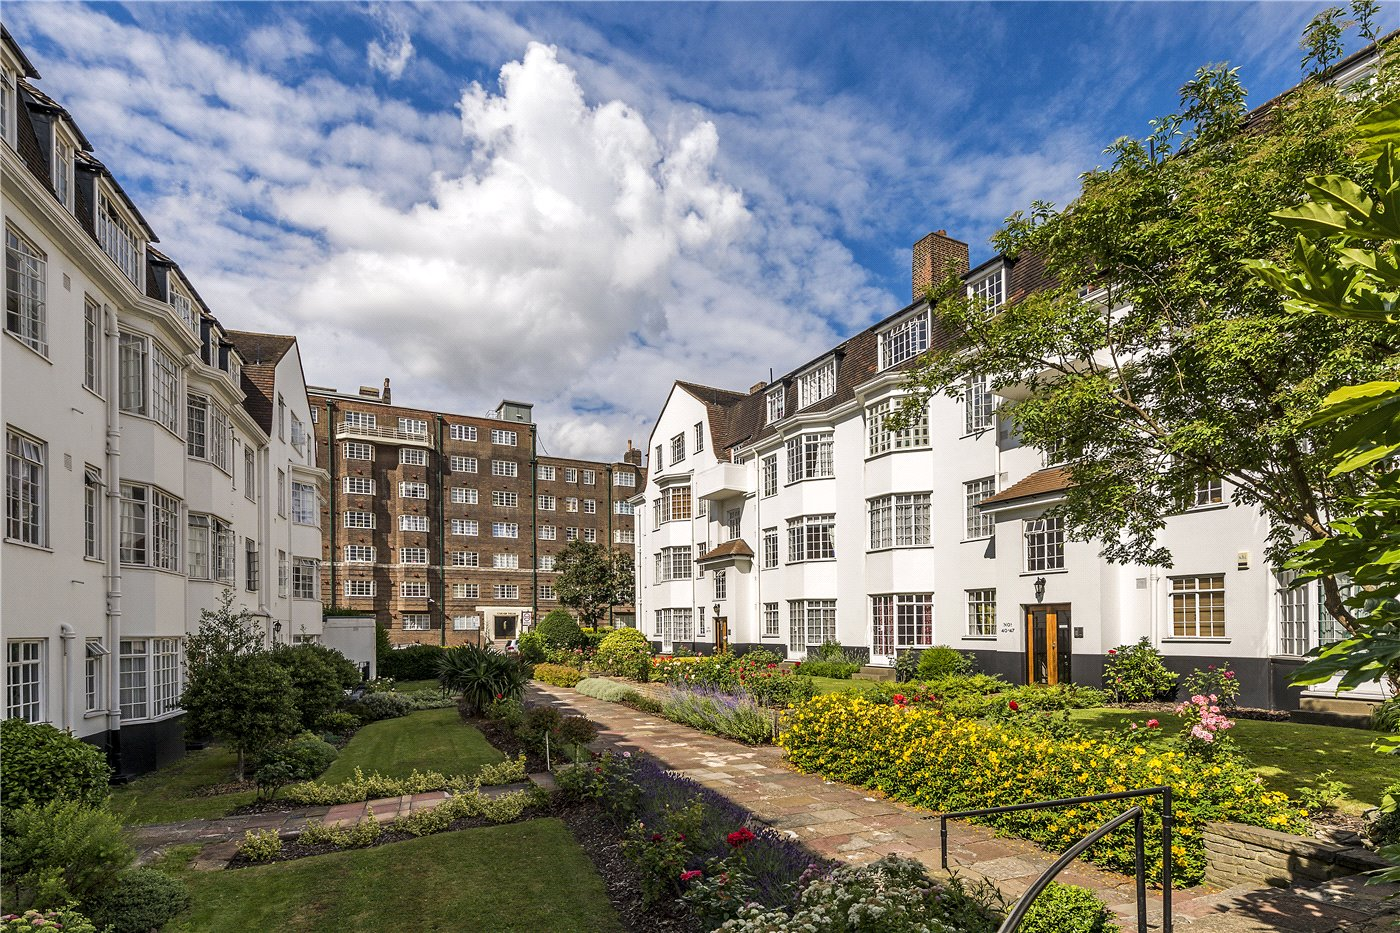 2 Bedroom Property For Sale In Wavertree Court Streatham